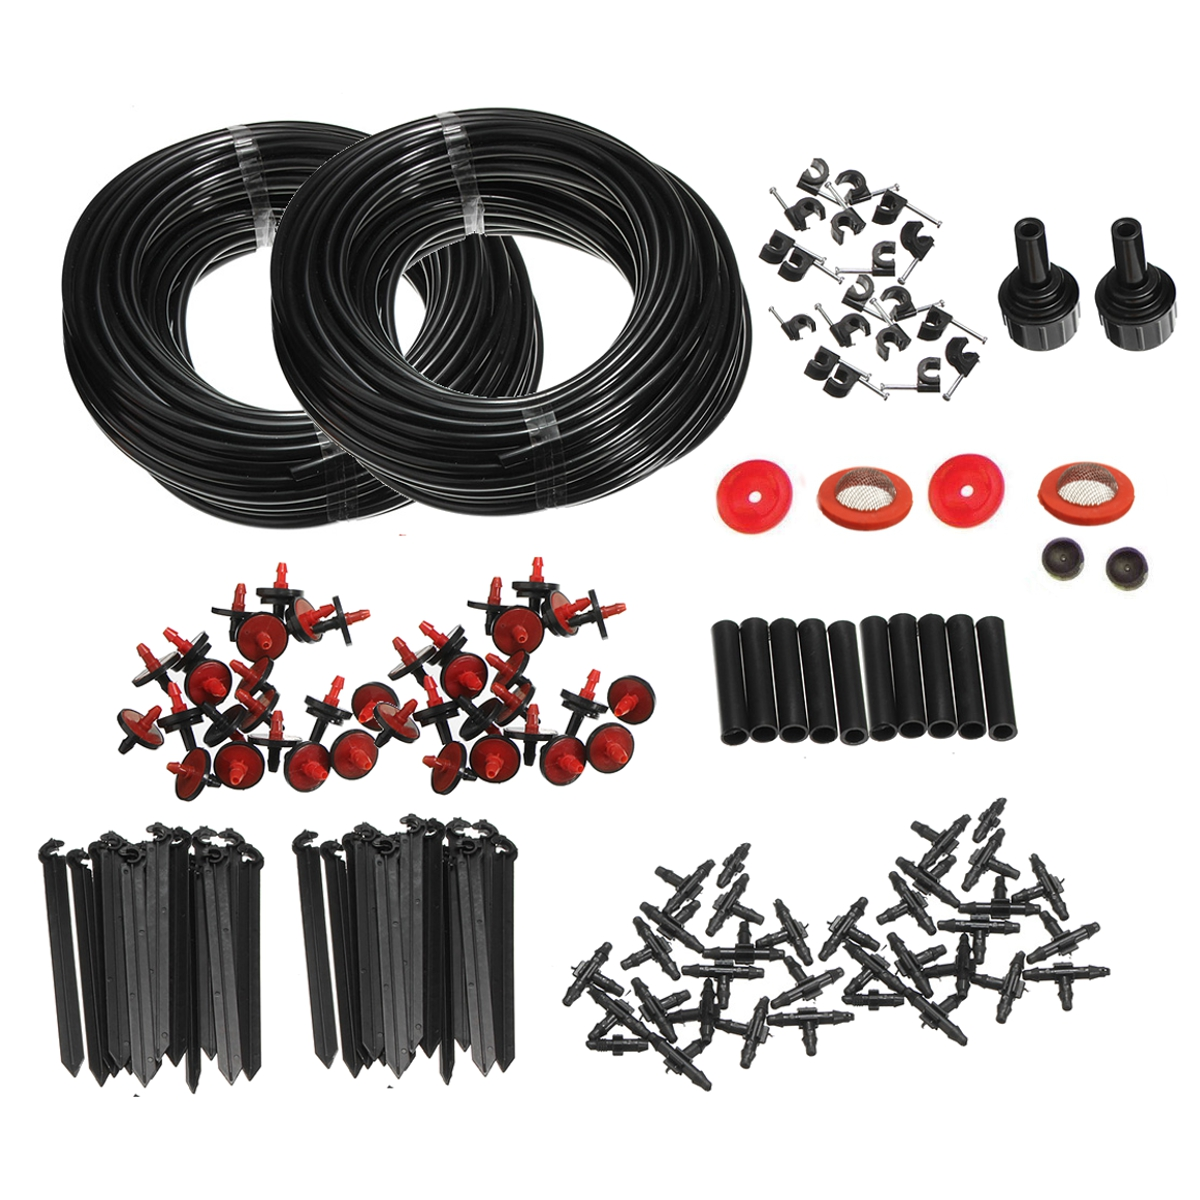 150FT Automatic Micro Drip Irrigation System Plant Self Watering Garden Hose Kits For Home Garden Hanging Basket Watering Automatic Kitcopy Plant Flower